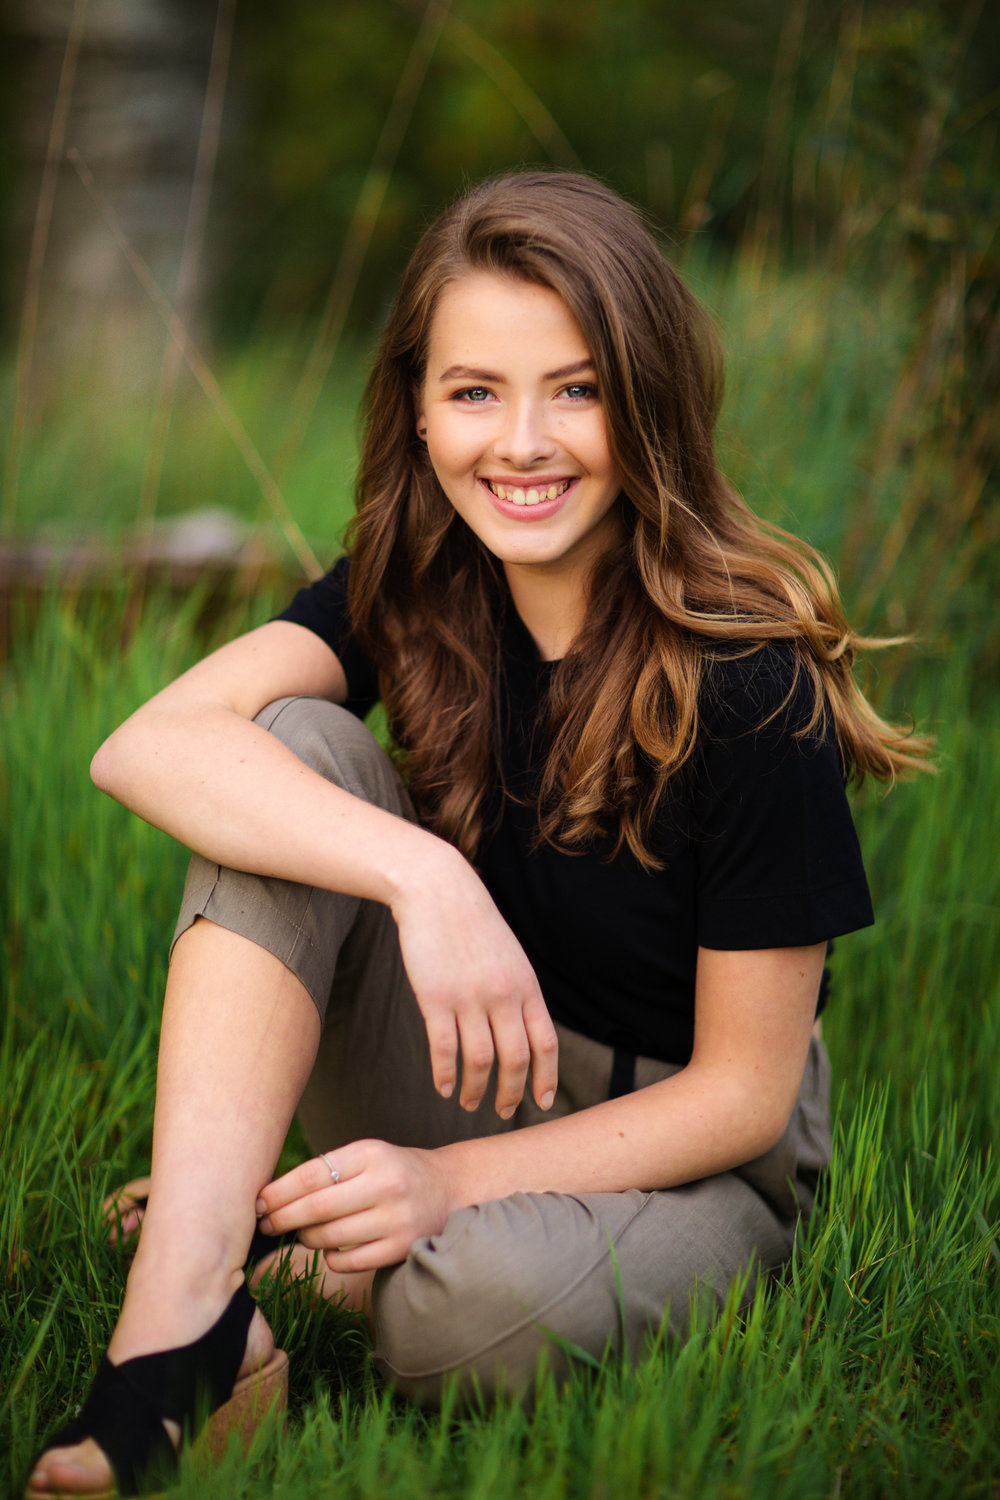 ariellanoellephotography-highschool-senior-model-rep-portraits-seattle-area-photographer-1-15.jpg